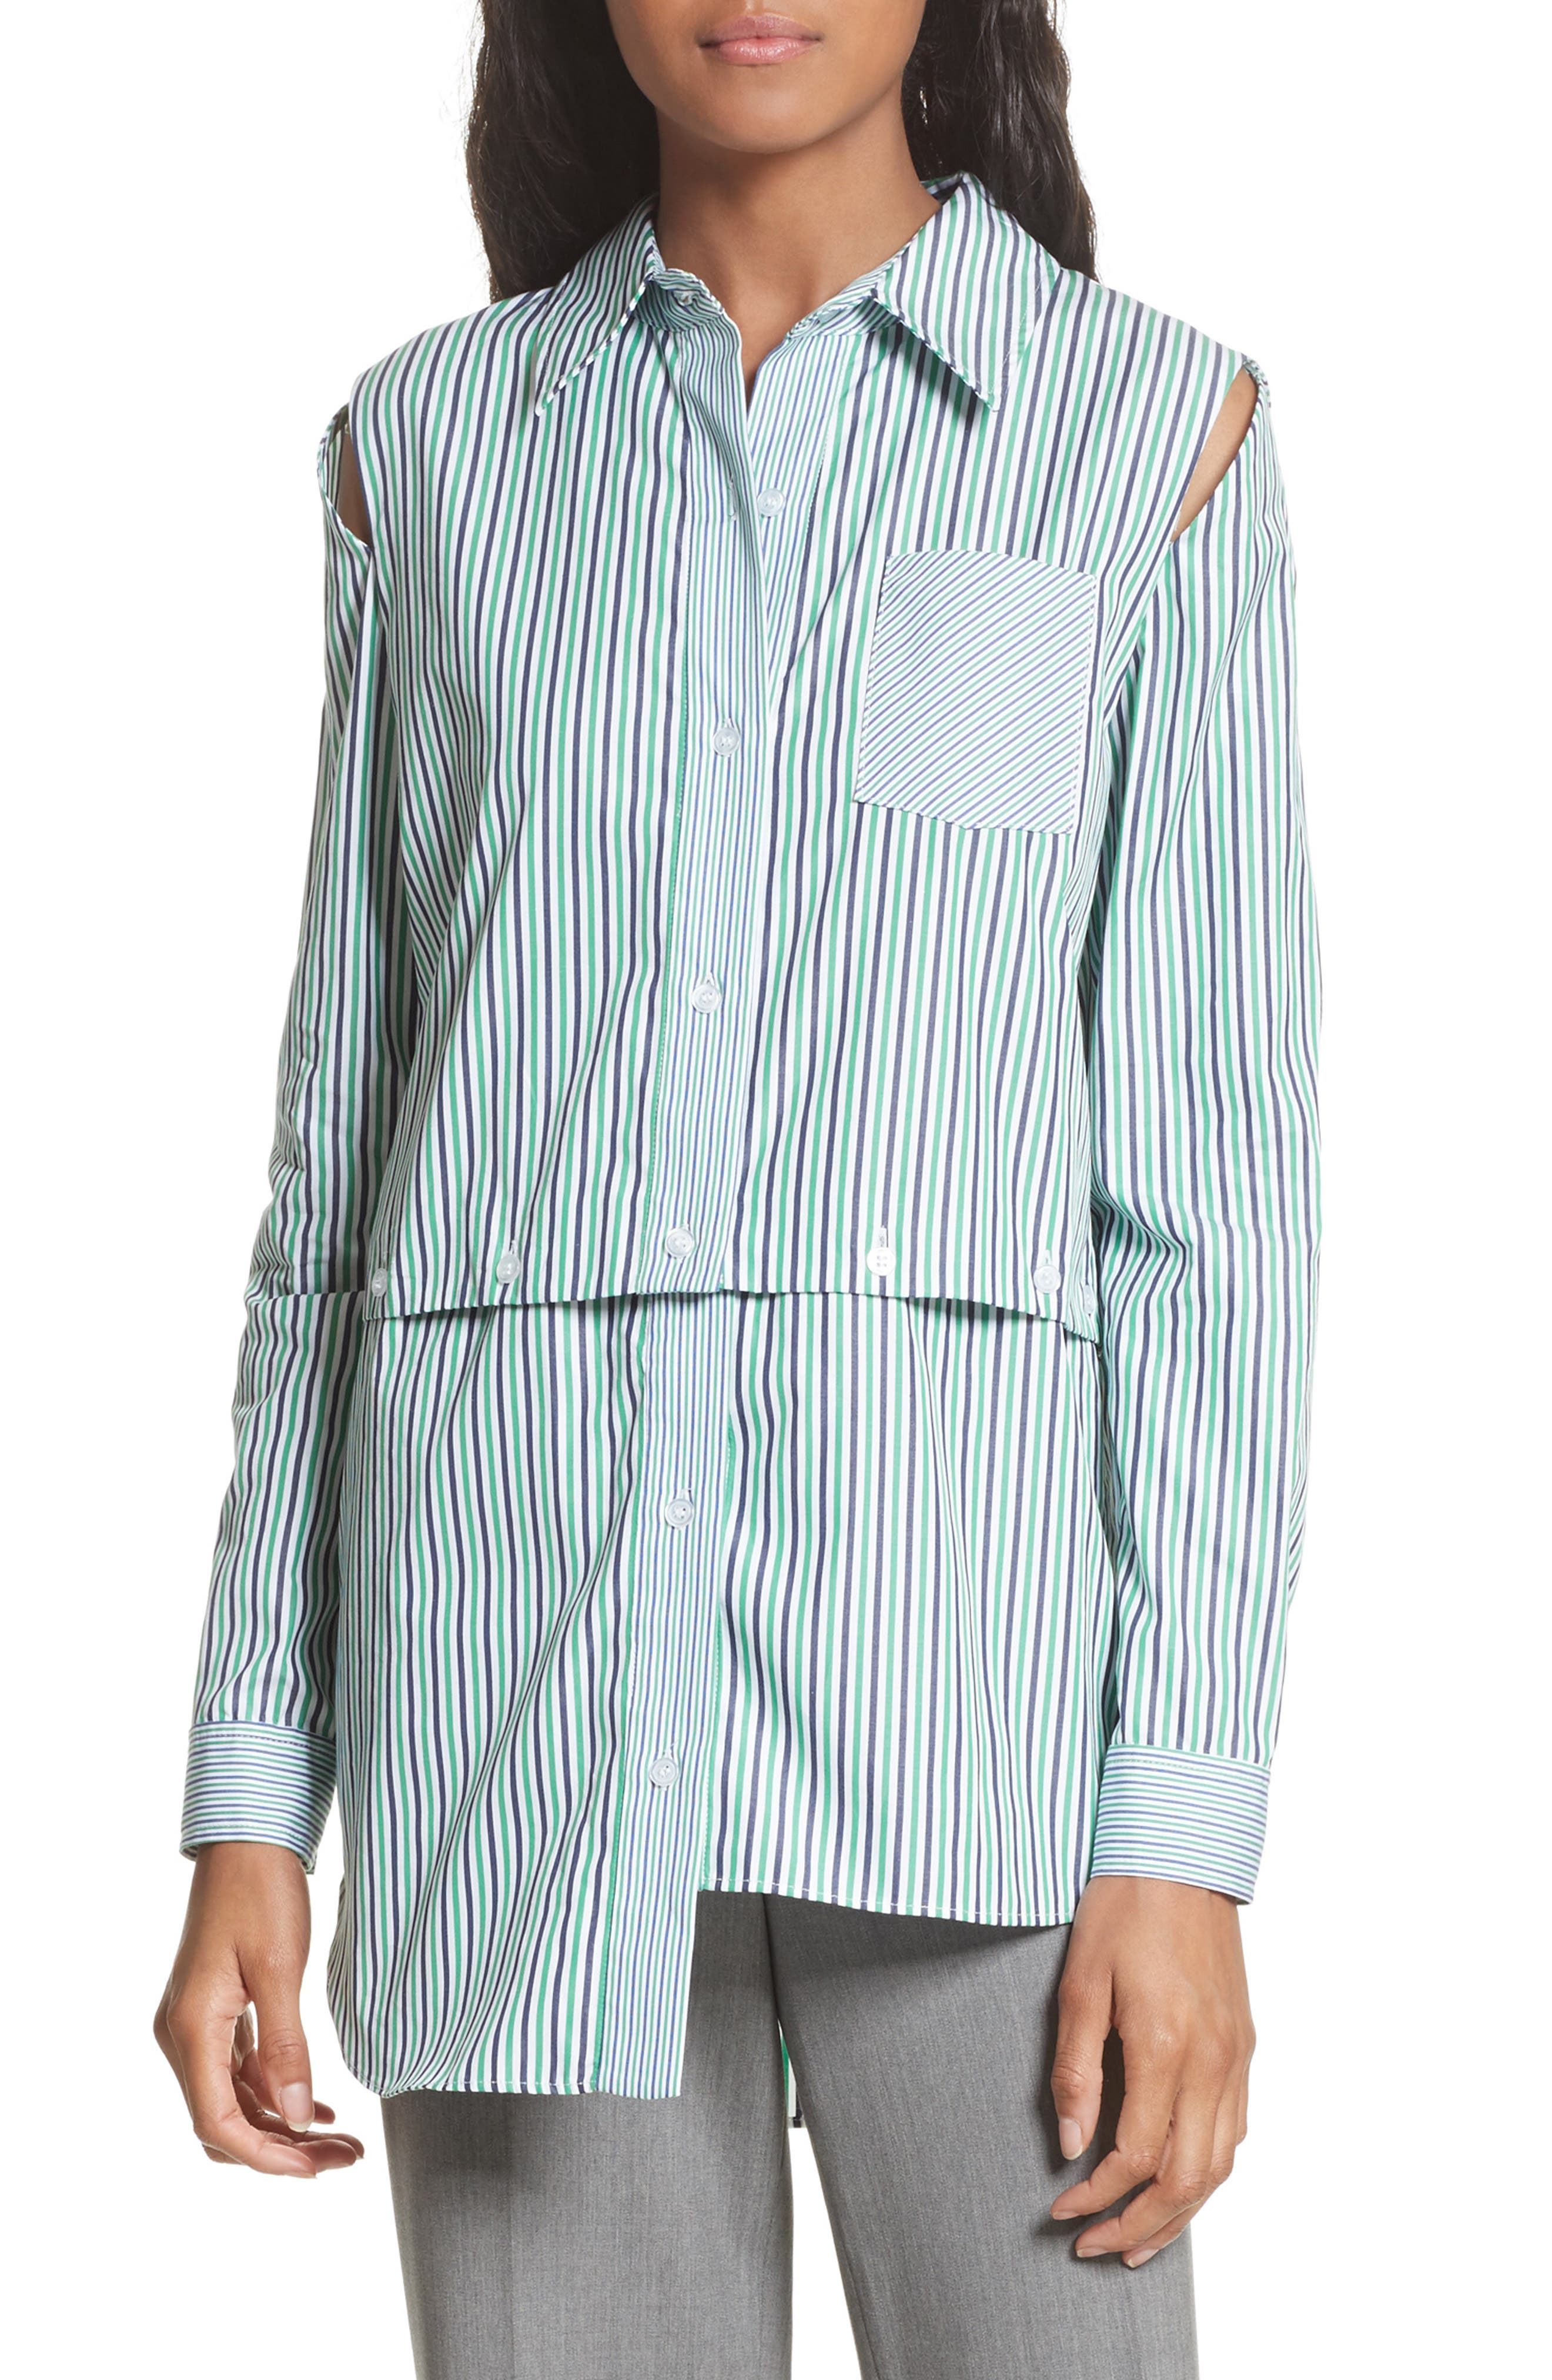 Milly Fractured Stripe Shirt